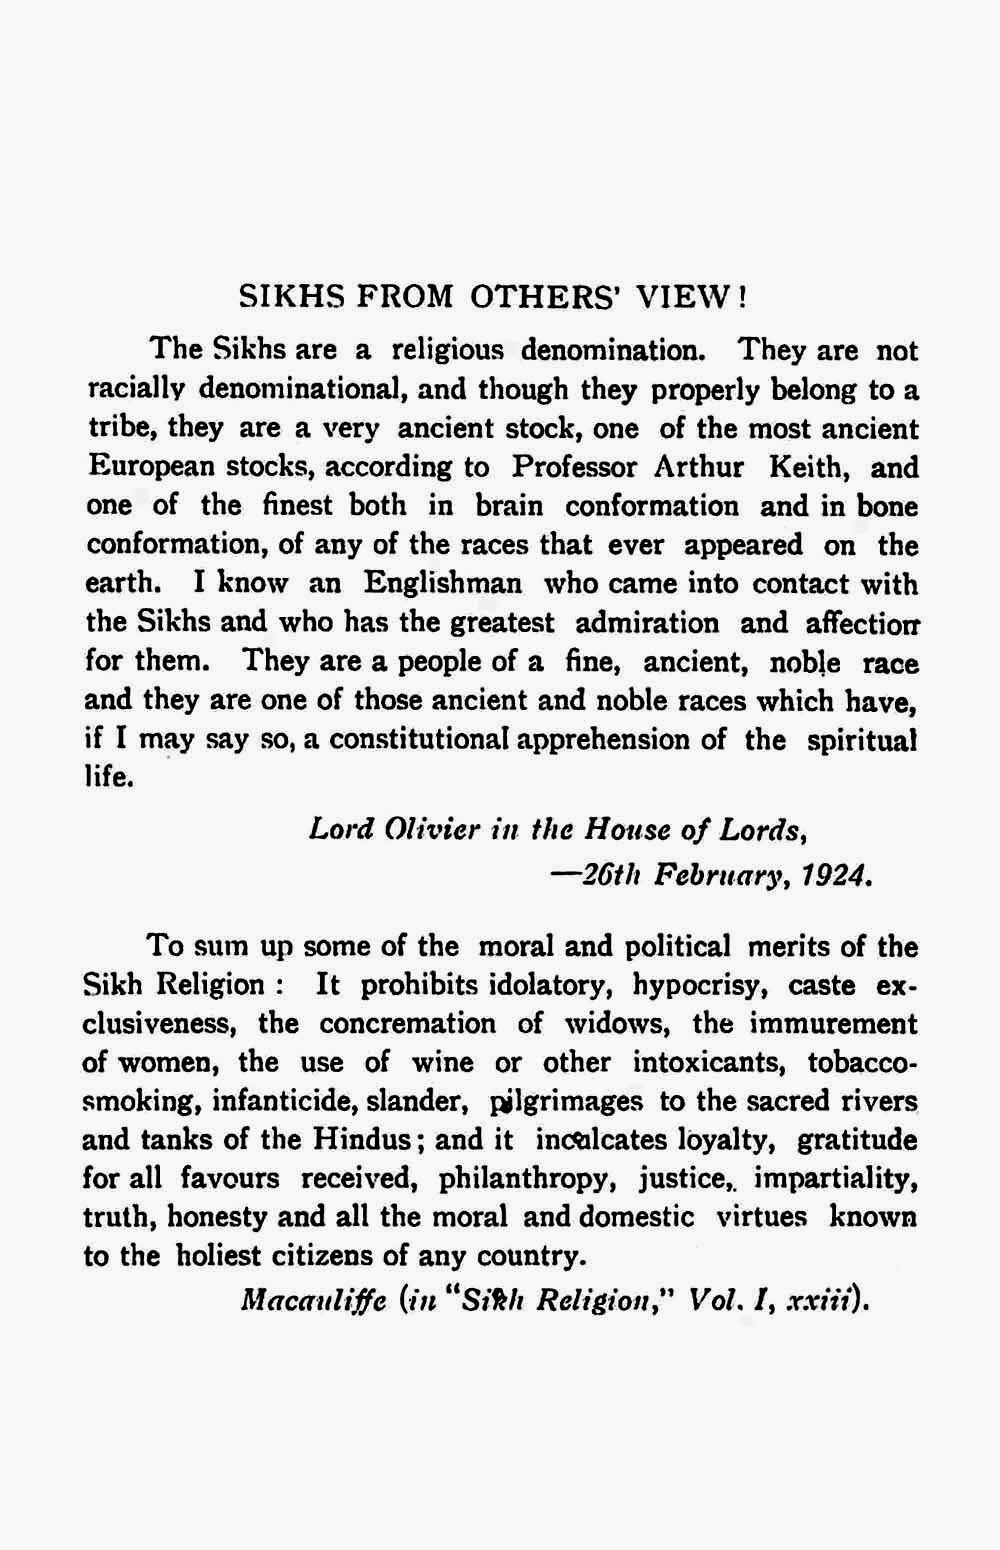 sikh digital library sri guru arjan dev ji what he msc kashmir in 1933 and published by the sikh religious tract society tarn taran the tract also includes an article sri gur arjan dev ji by